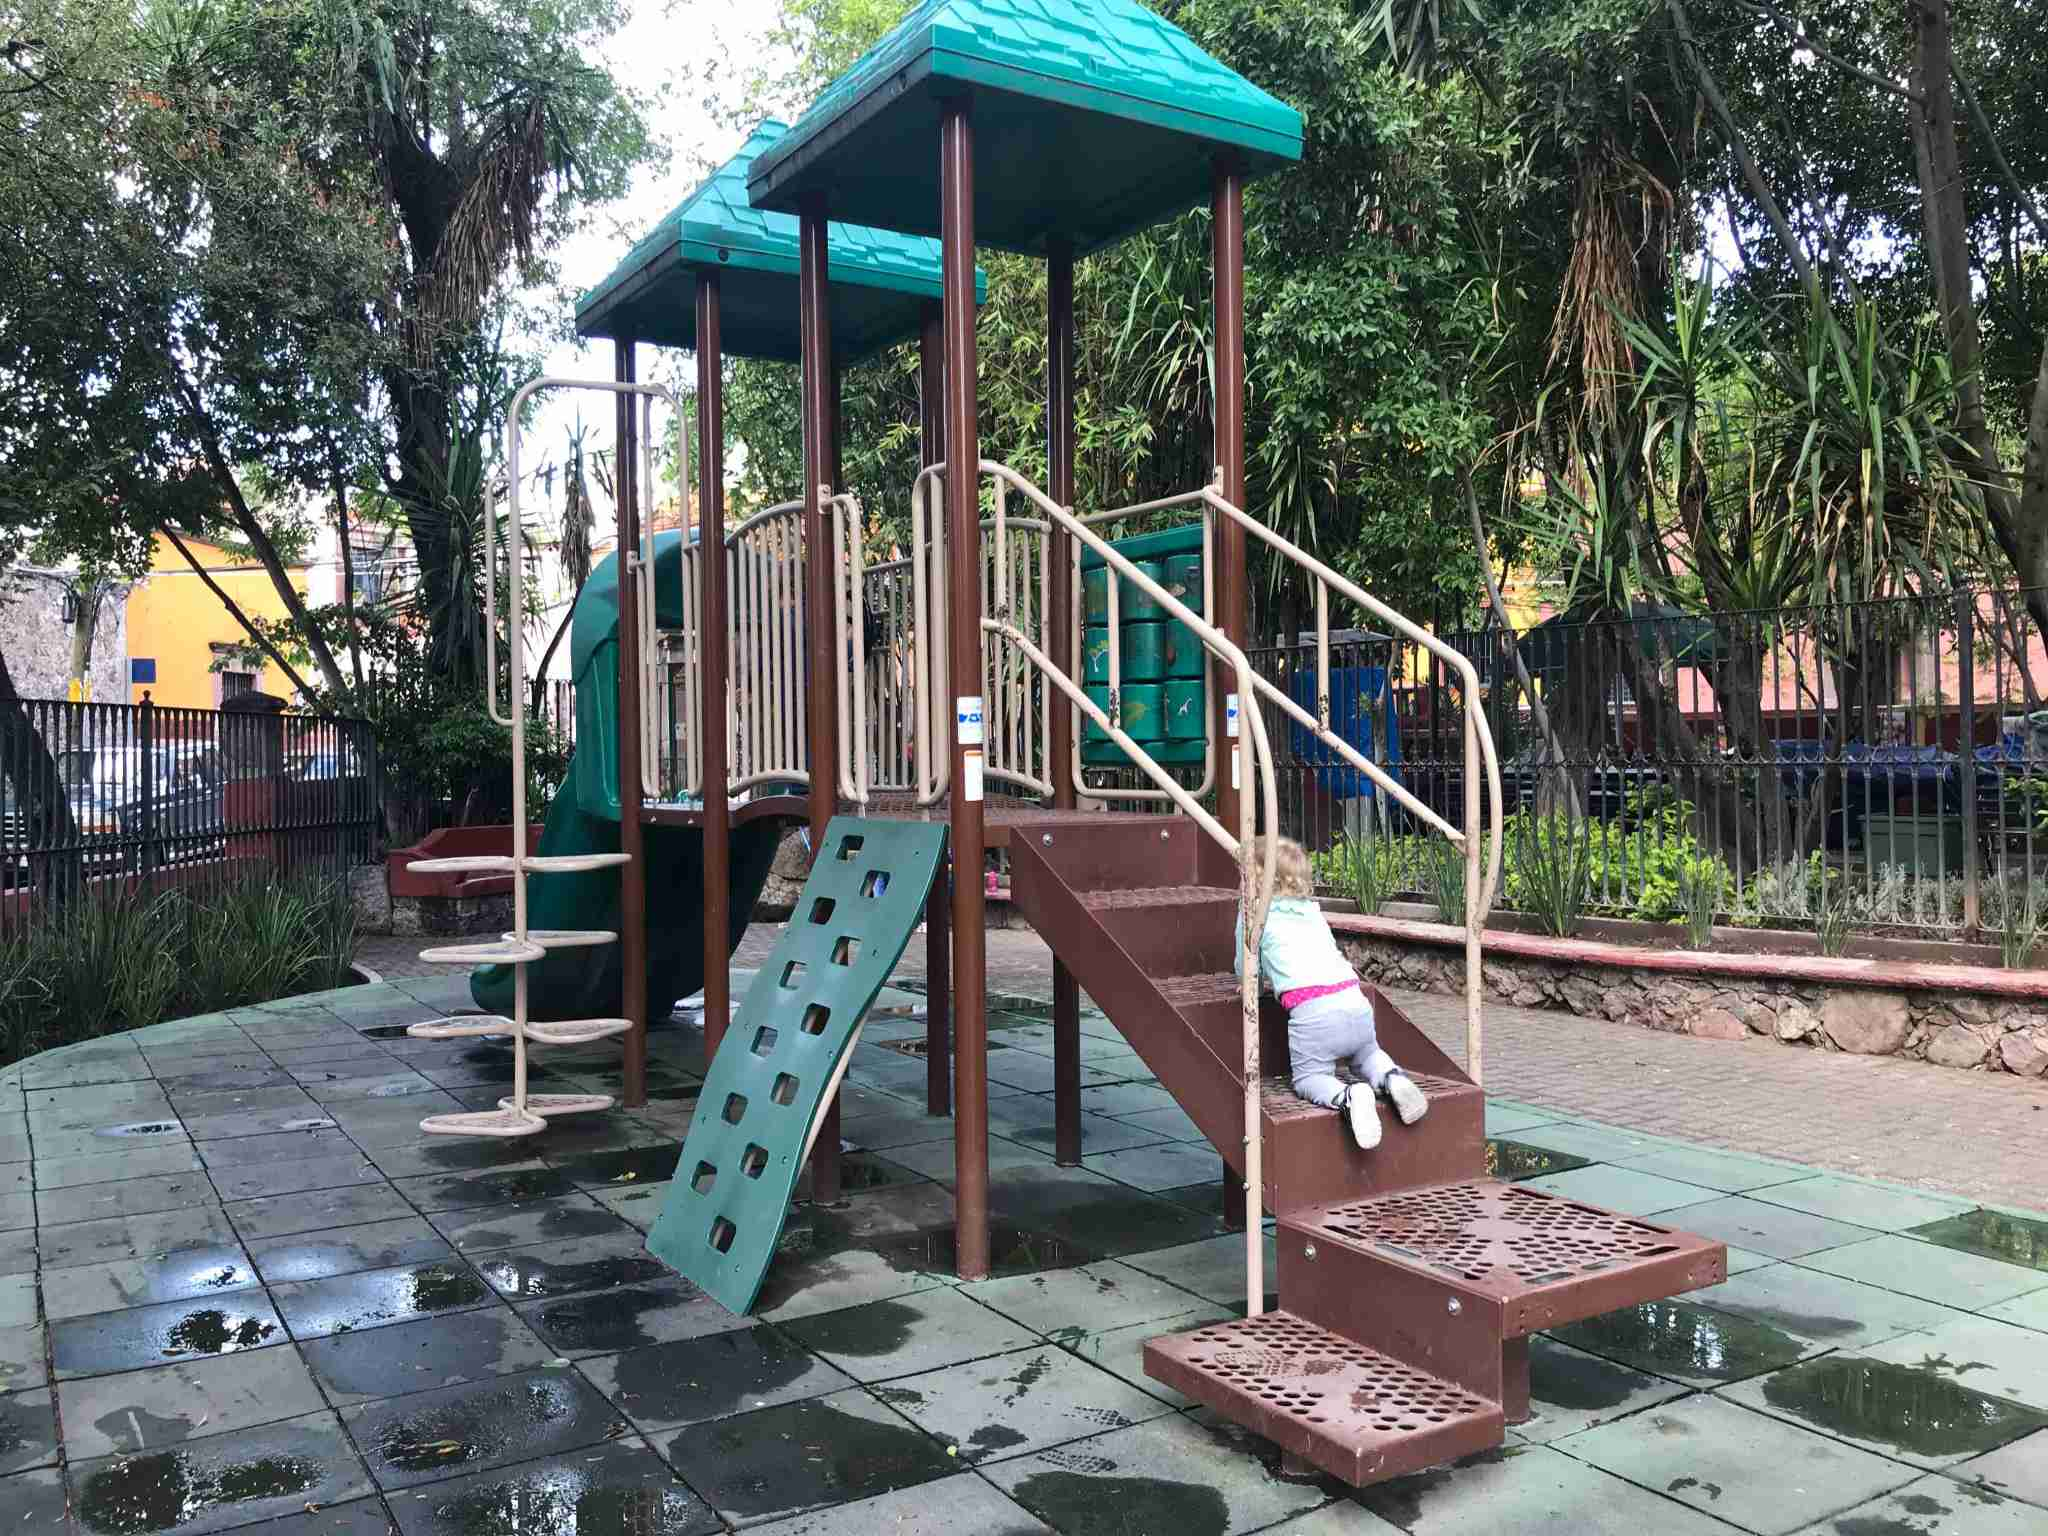 The playground at Parque Benito Juarez is a great place to bring the kids to burn off some energy (Terry-Ward.com)